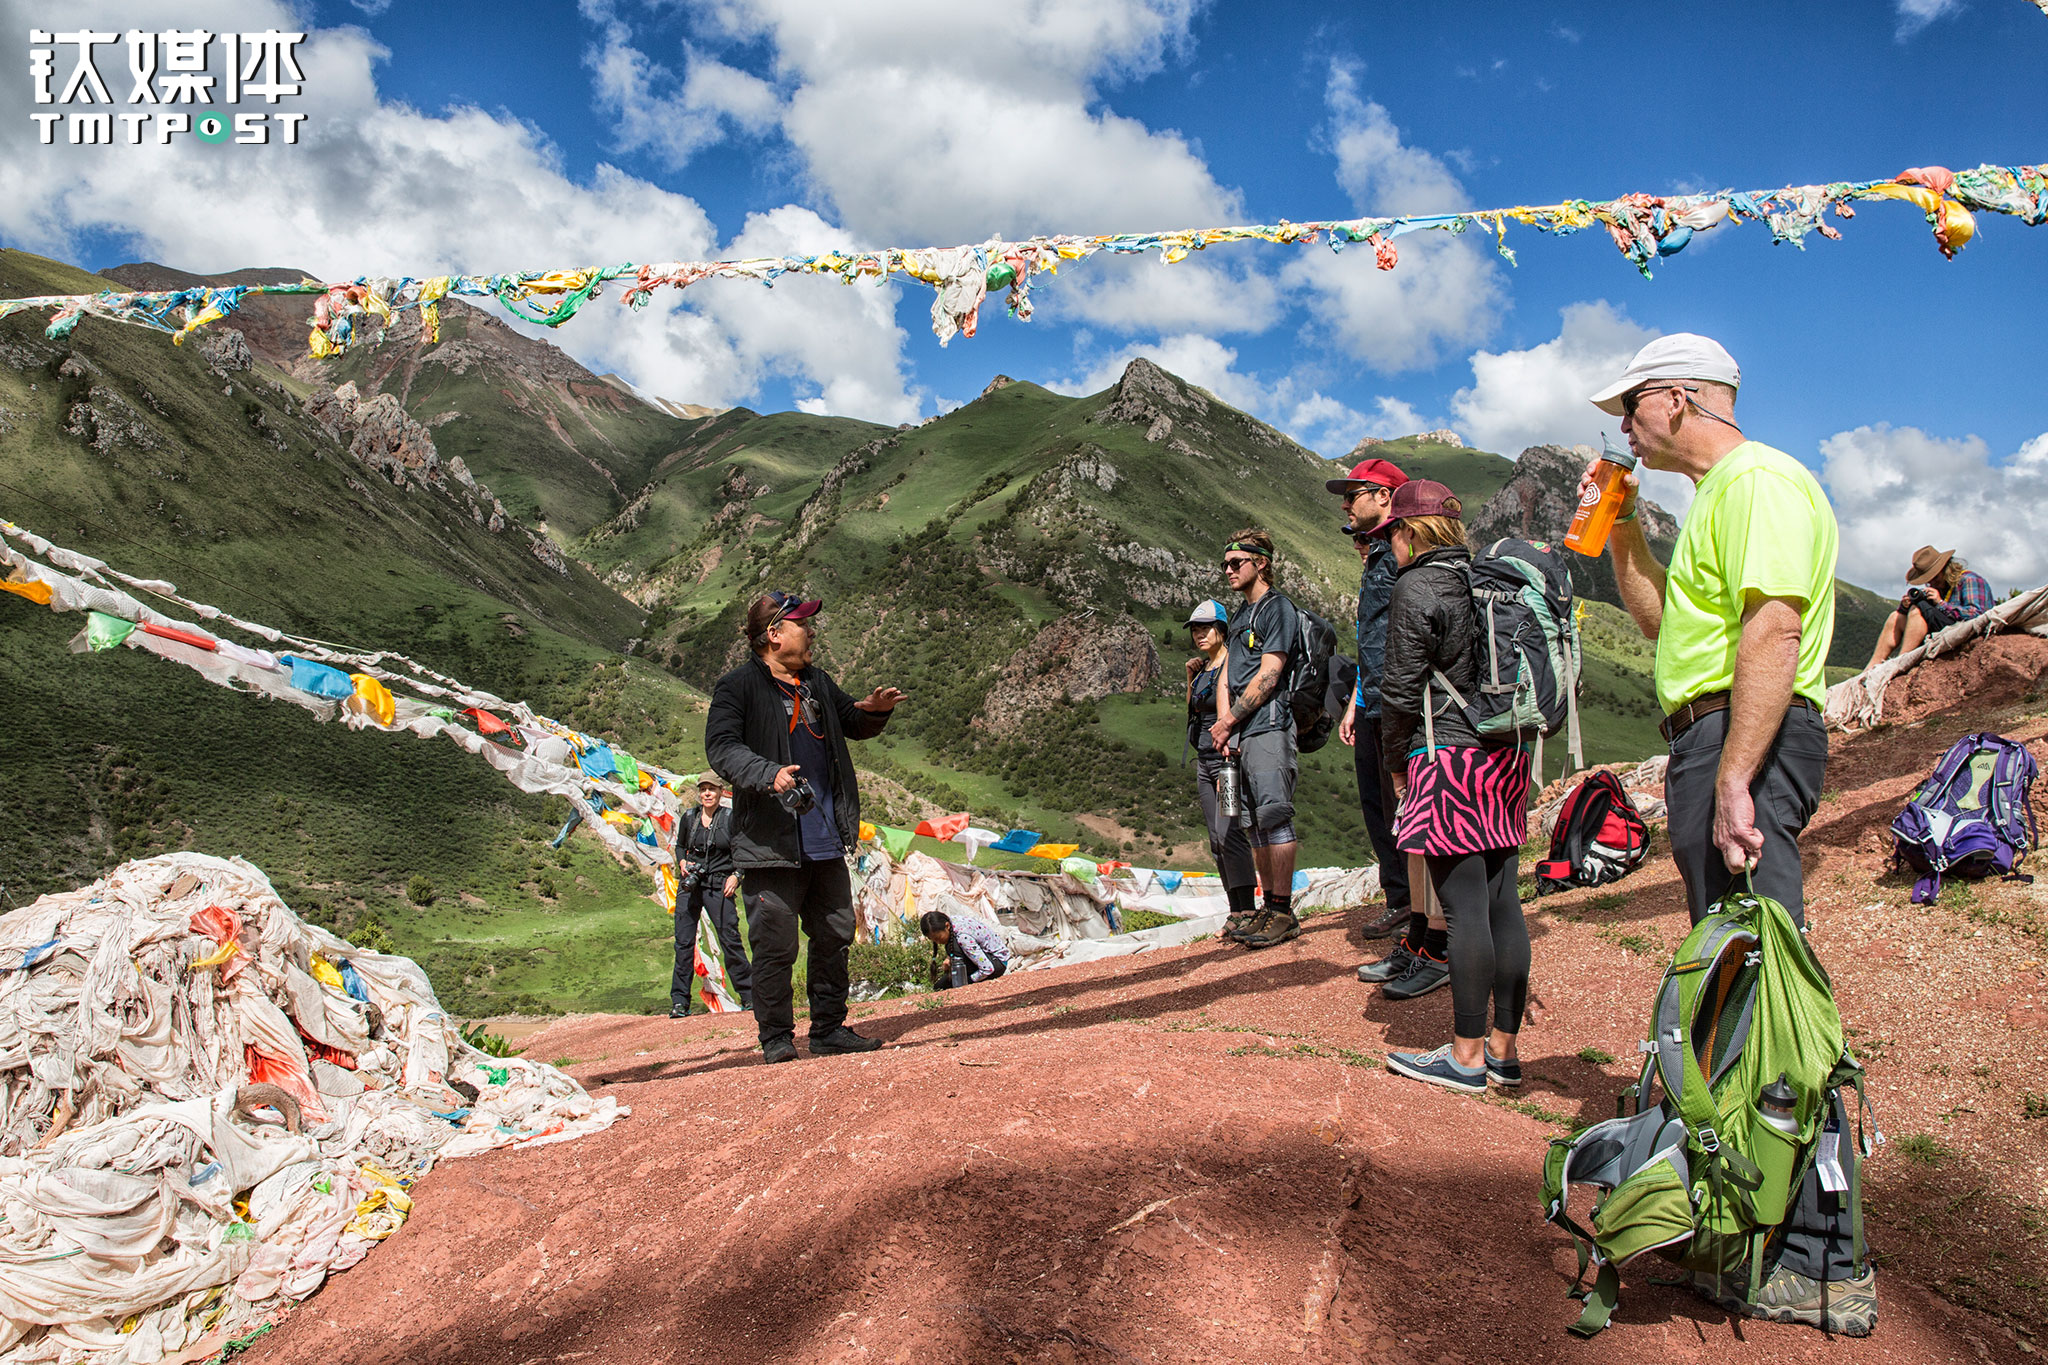 During the trek, hikers have to climb up hills decorated with prayer flags. The accompanying Chinese culture ambassador introduced the stories of prayer flags and Mani rock stacks etc. to the guests. The ambassador is a local person, proficient in speaking Mandarin, Tibetan and English. He introduces Tibetan culture to the guests and tell them stories of local legends and myths.